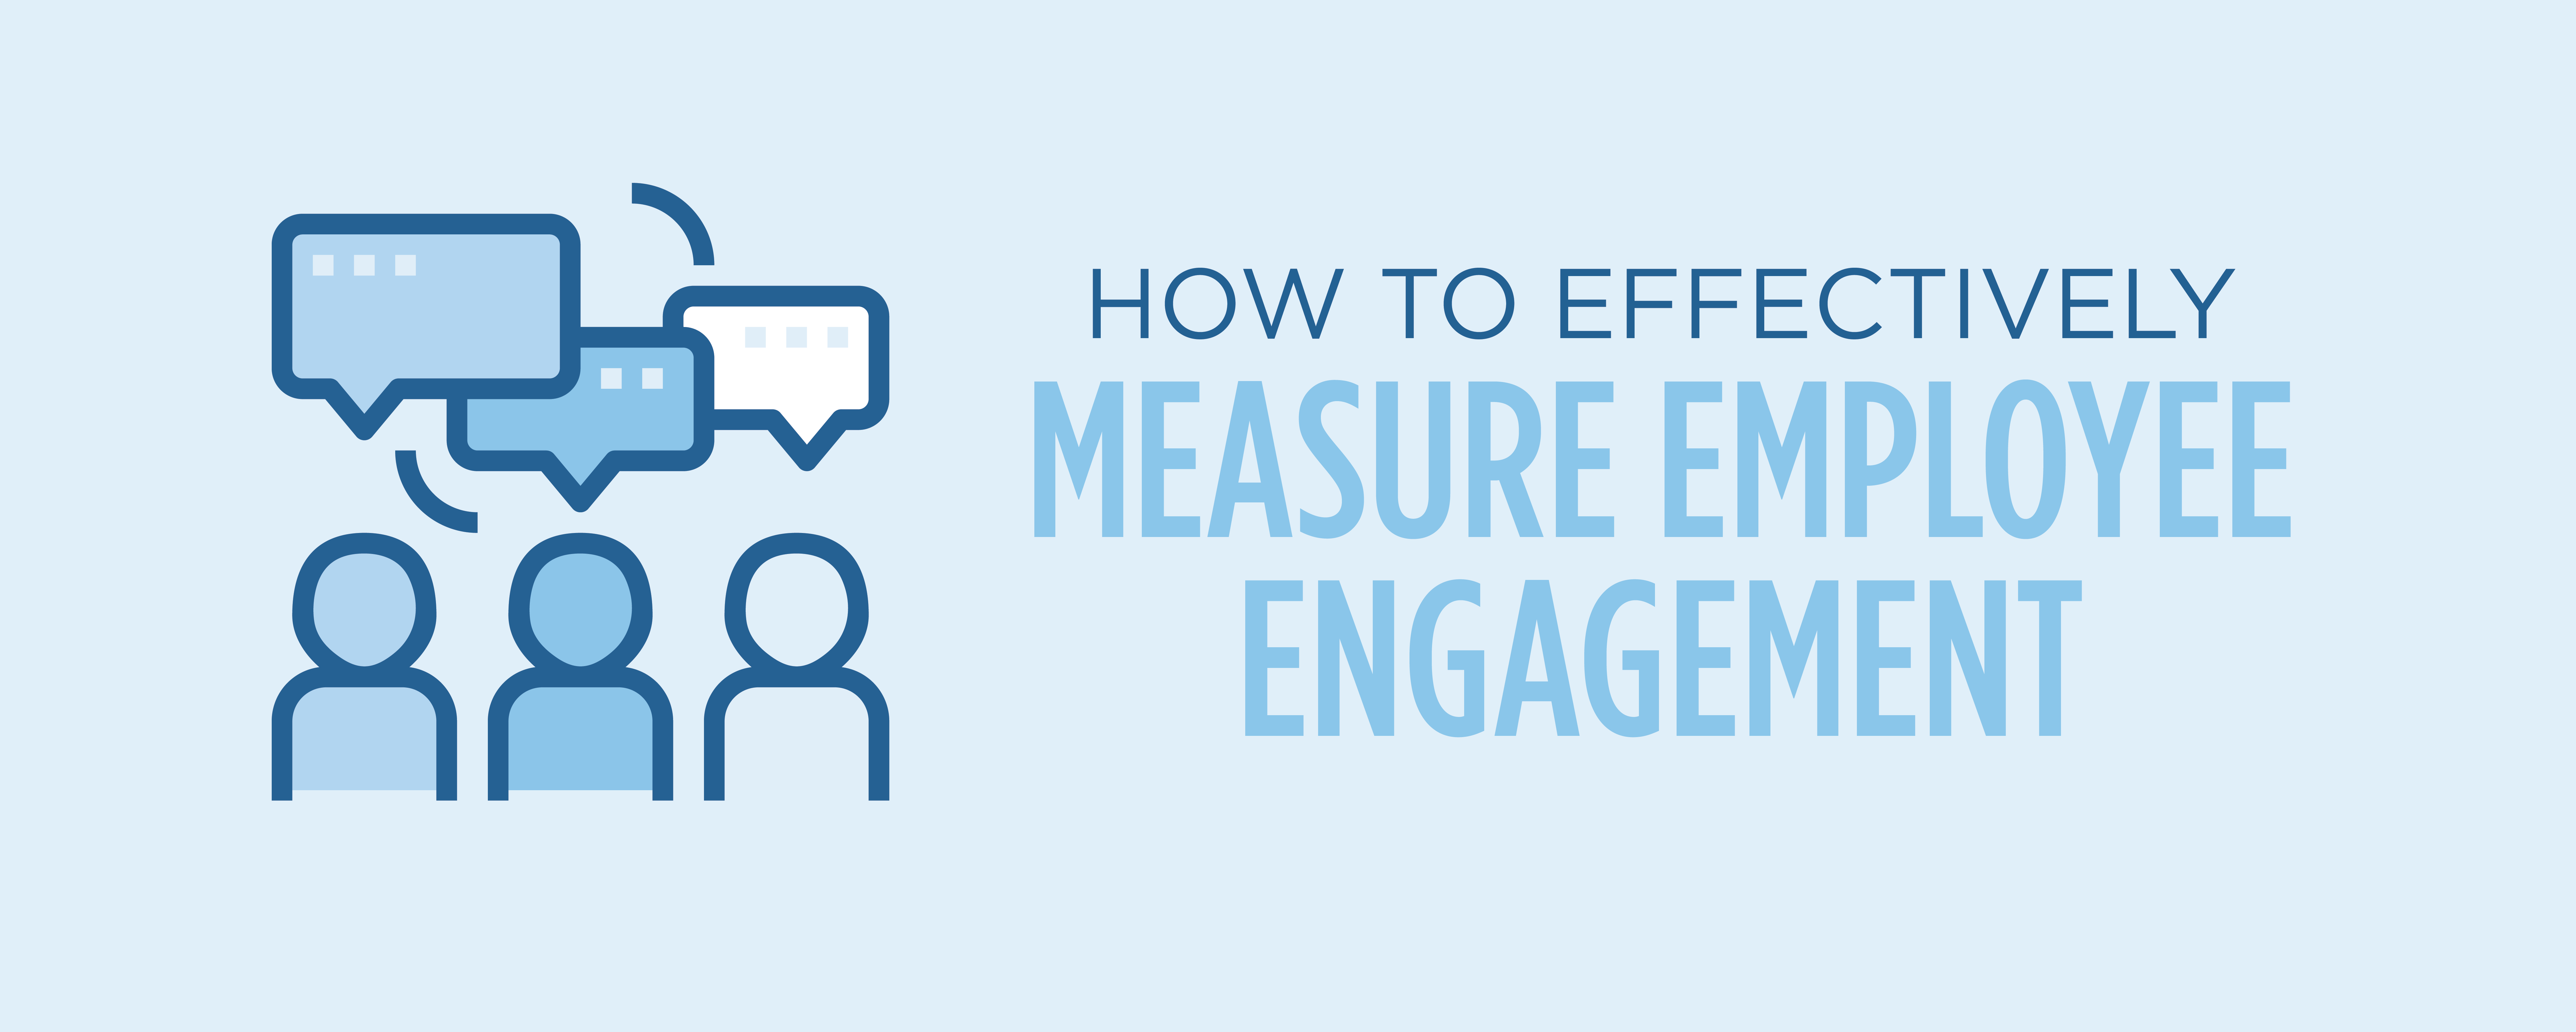 how to effectively measure employee engagement